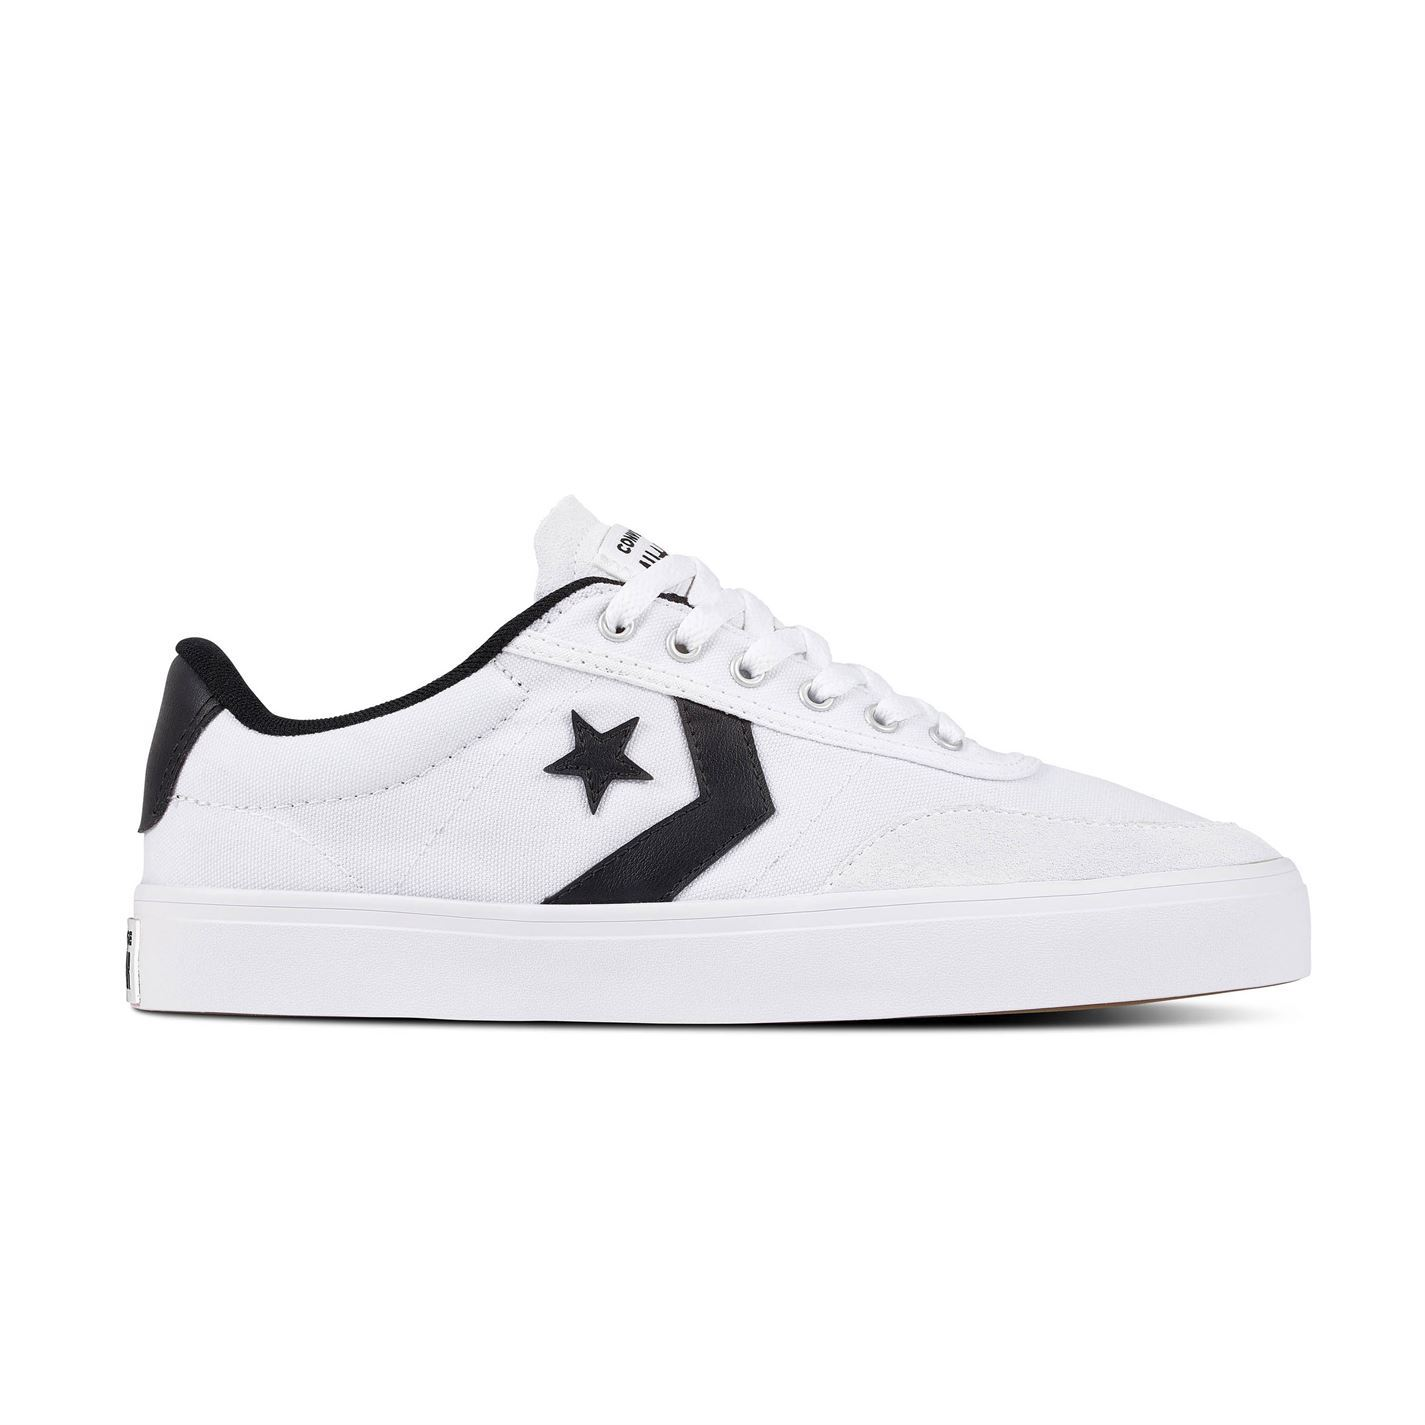 9f68392ec82b13 ... Converse Courtlandt Canvas Shoes Mens Footwear Trainers Sneakers